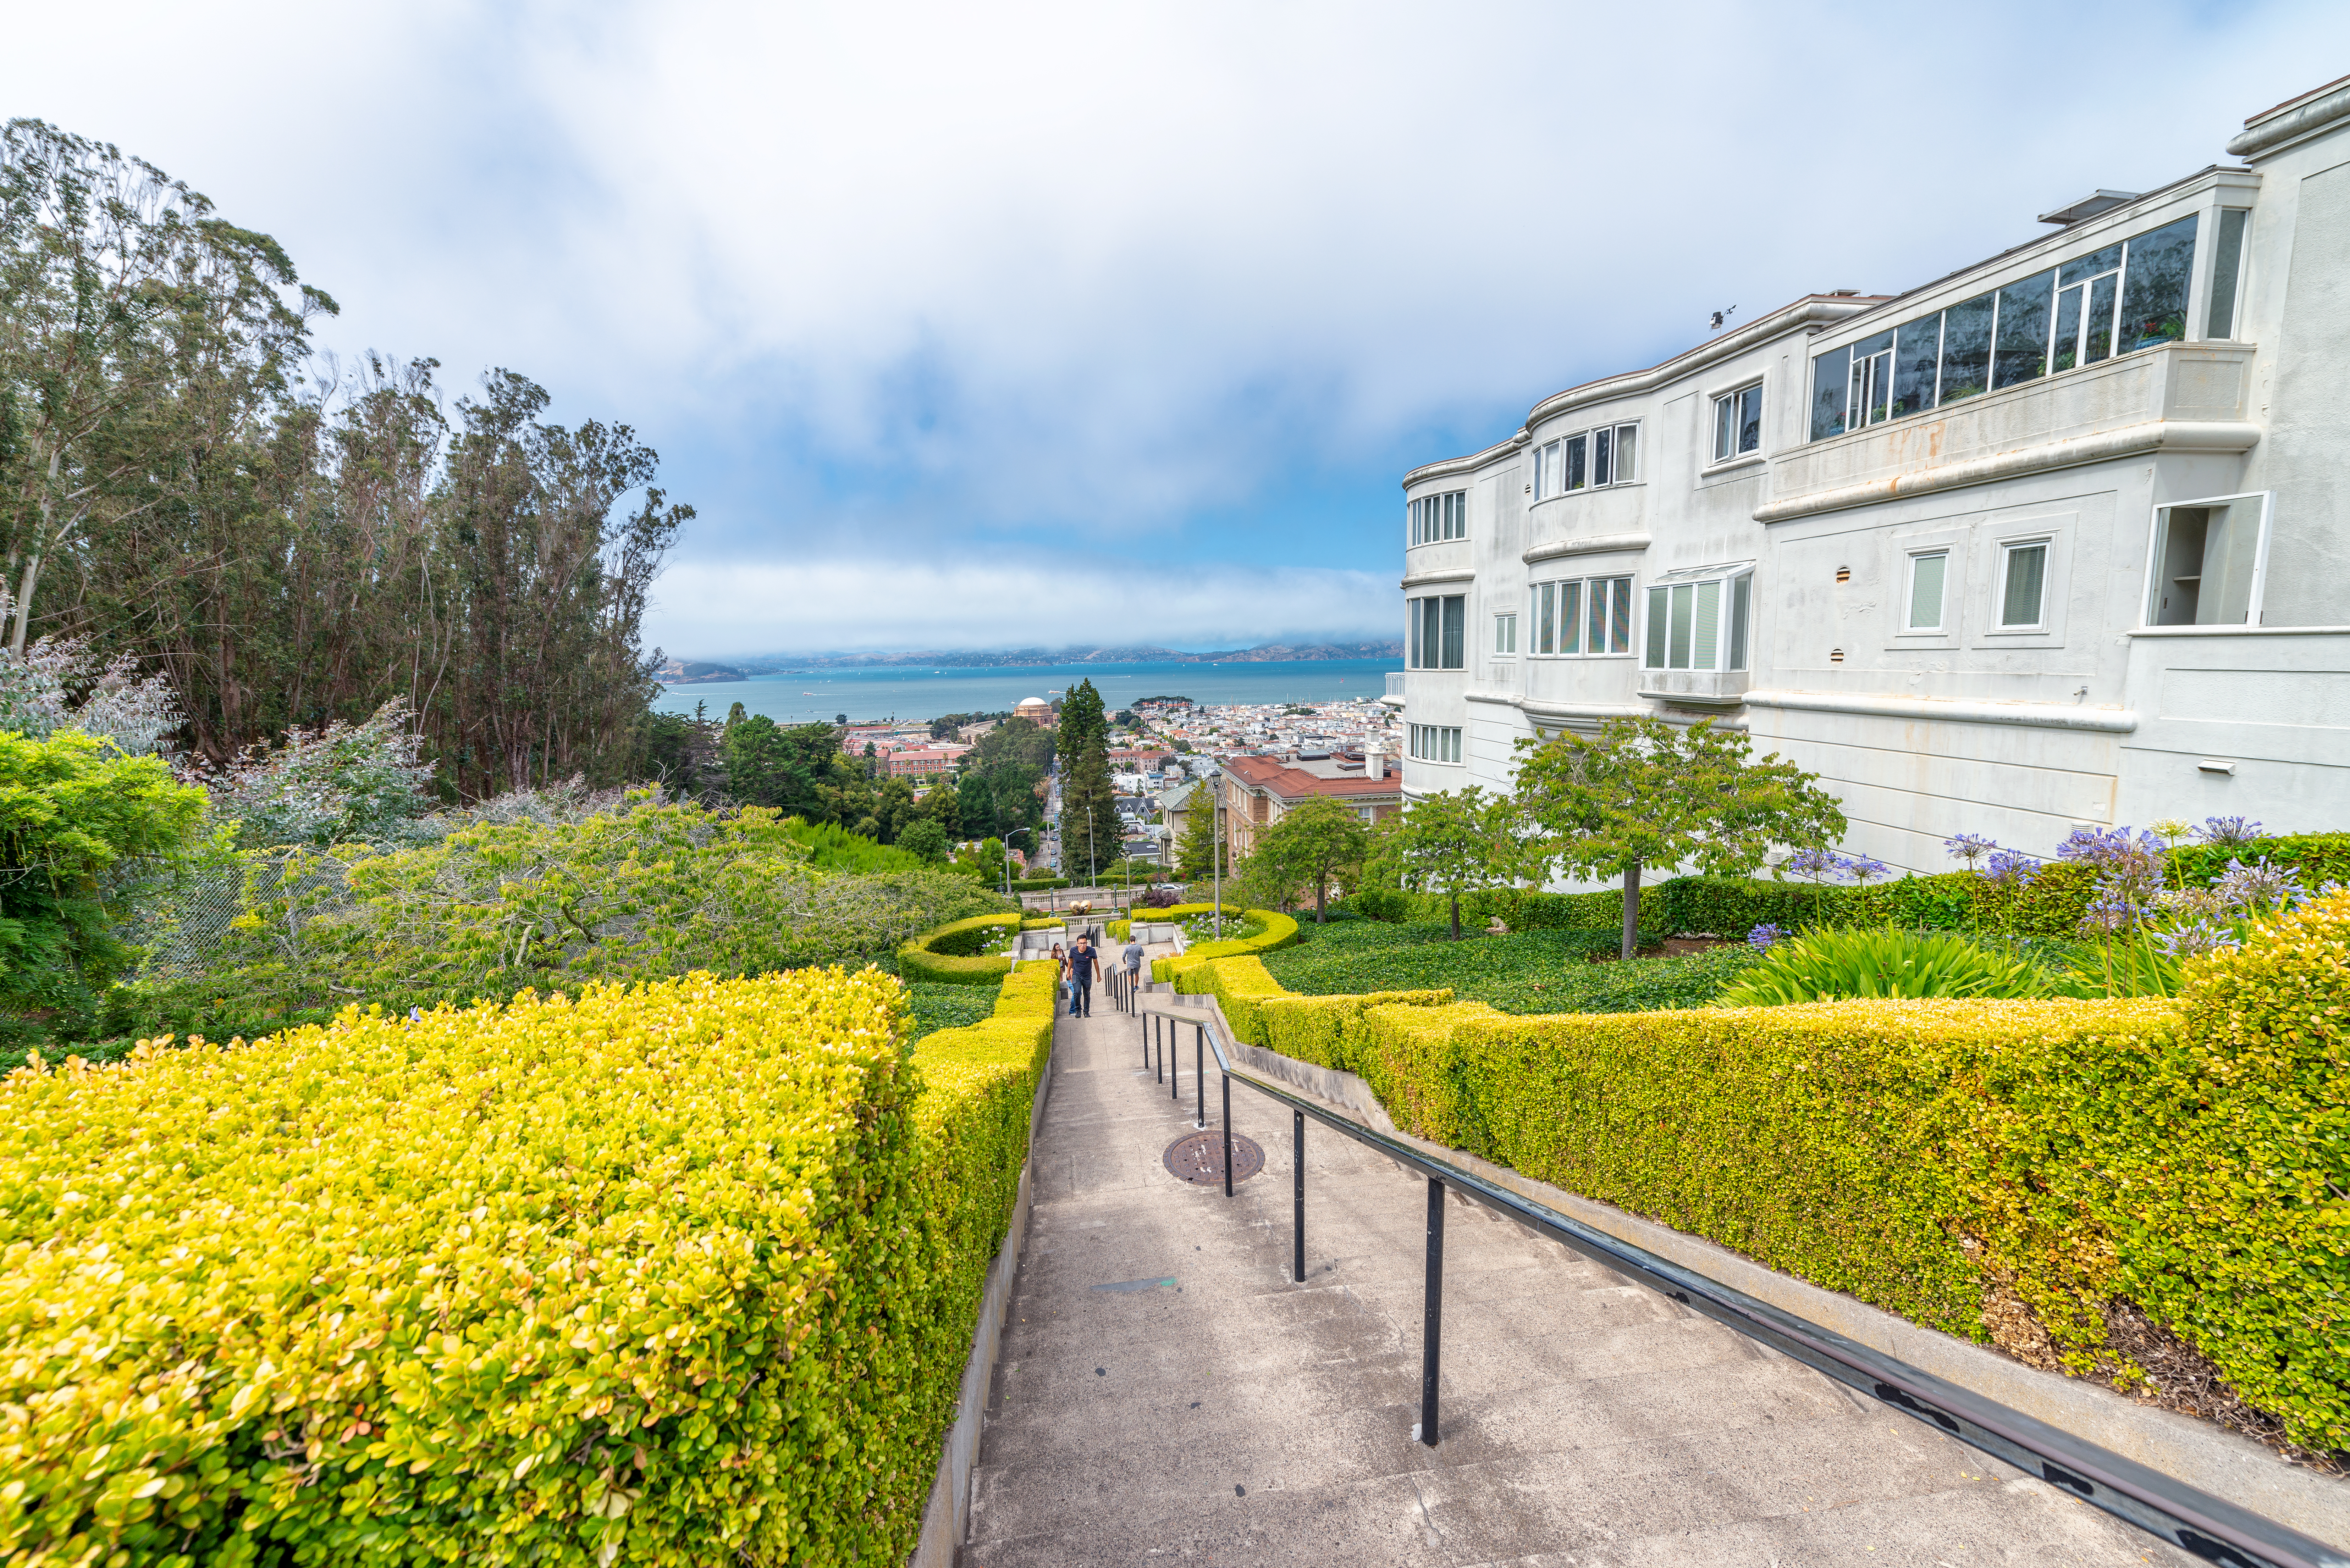 Concrete steps that drop down, bounded by yellow flowers on the left and mega mansions on the right.